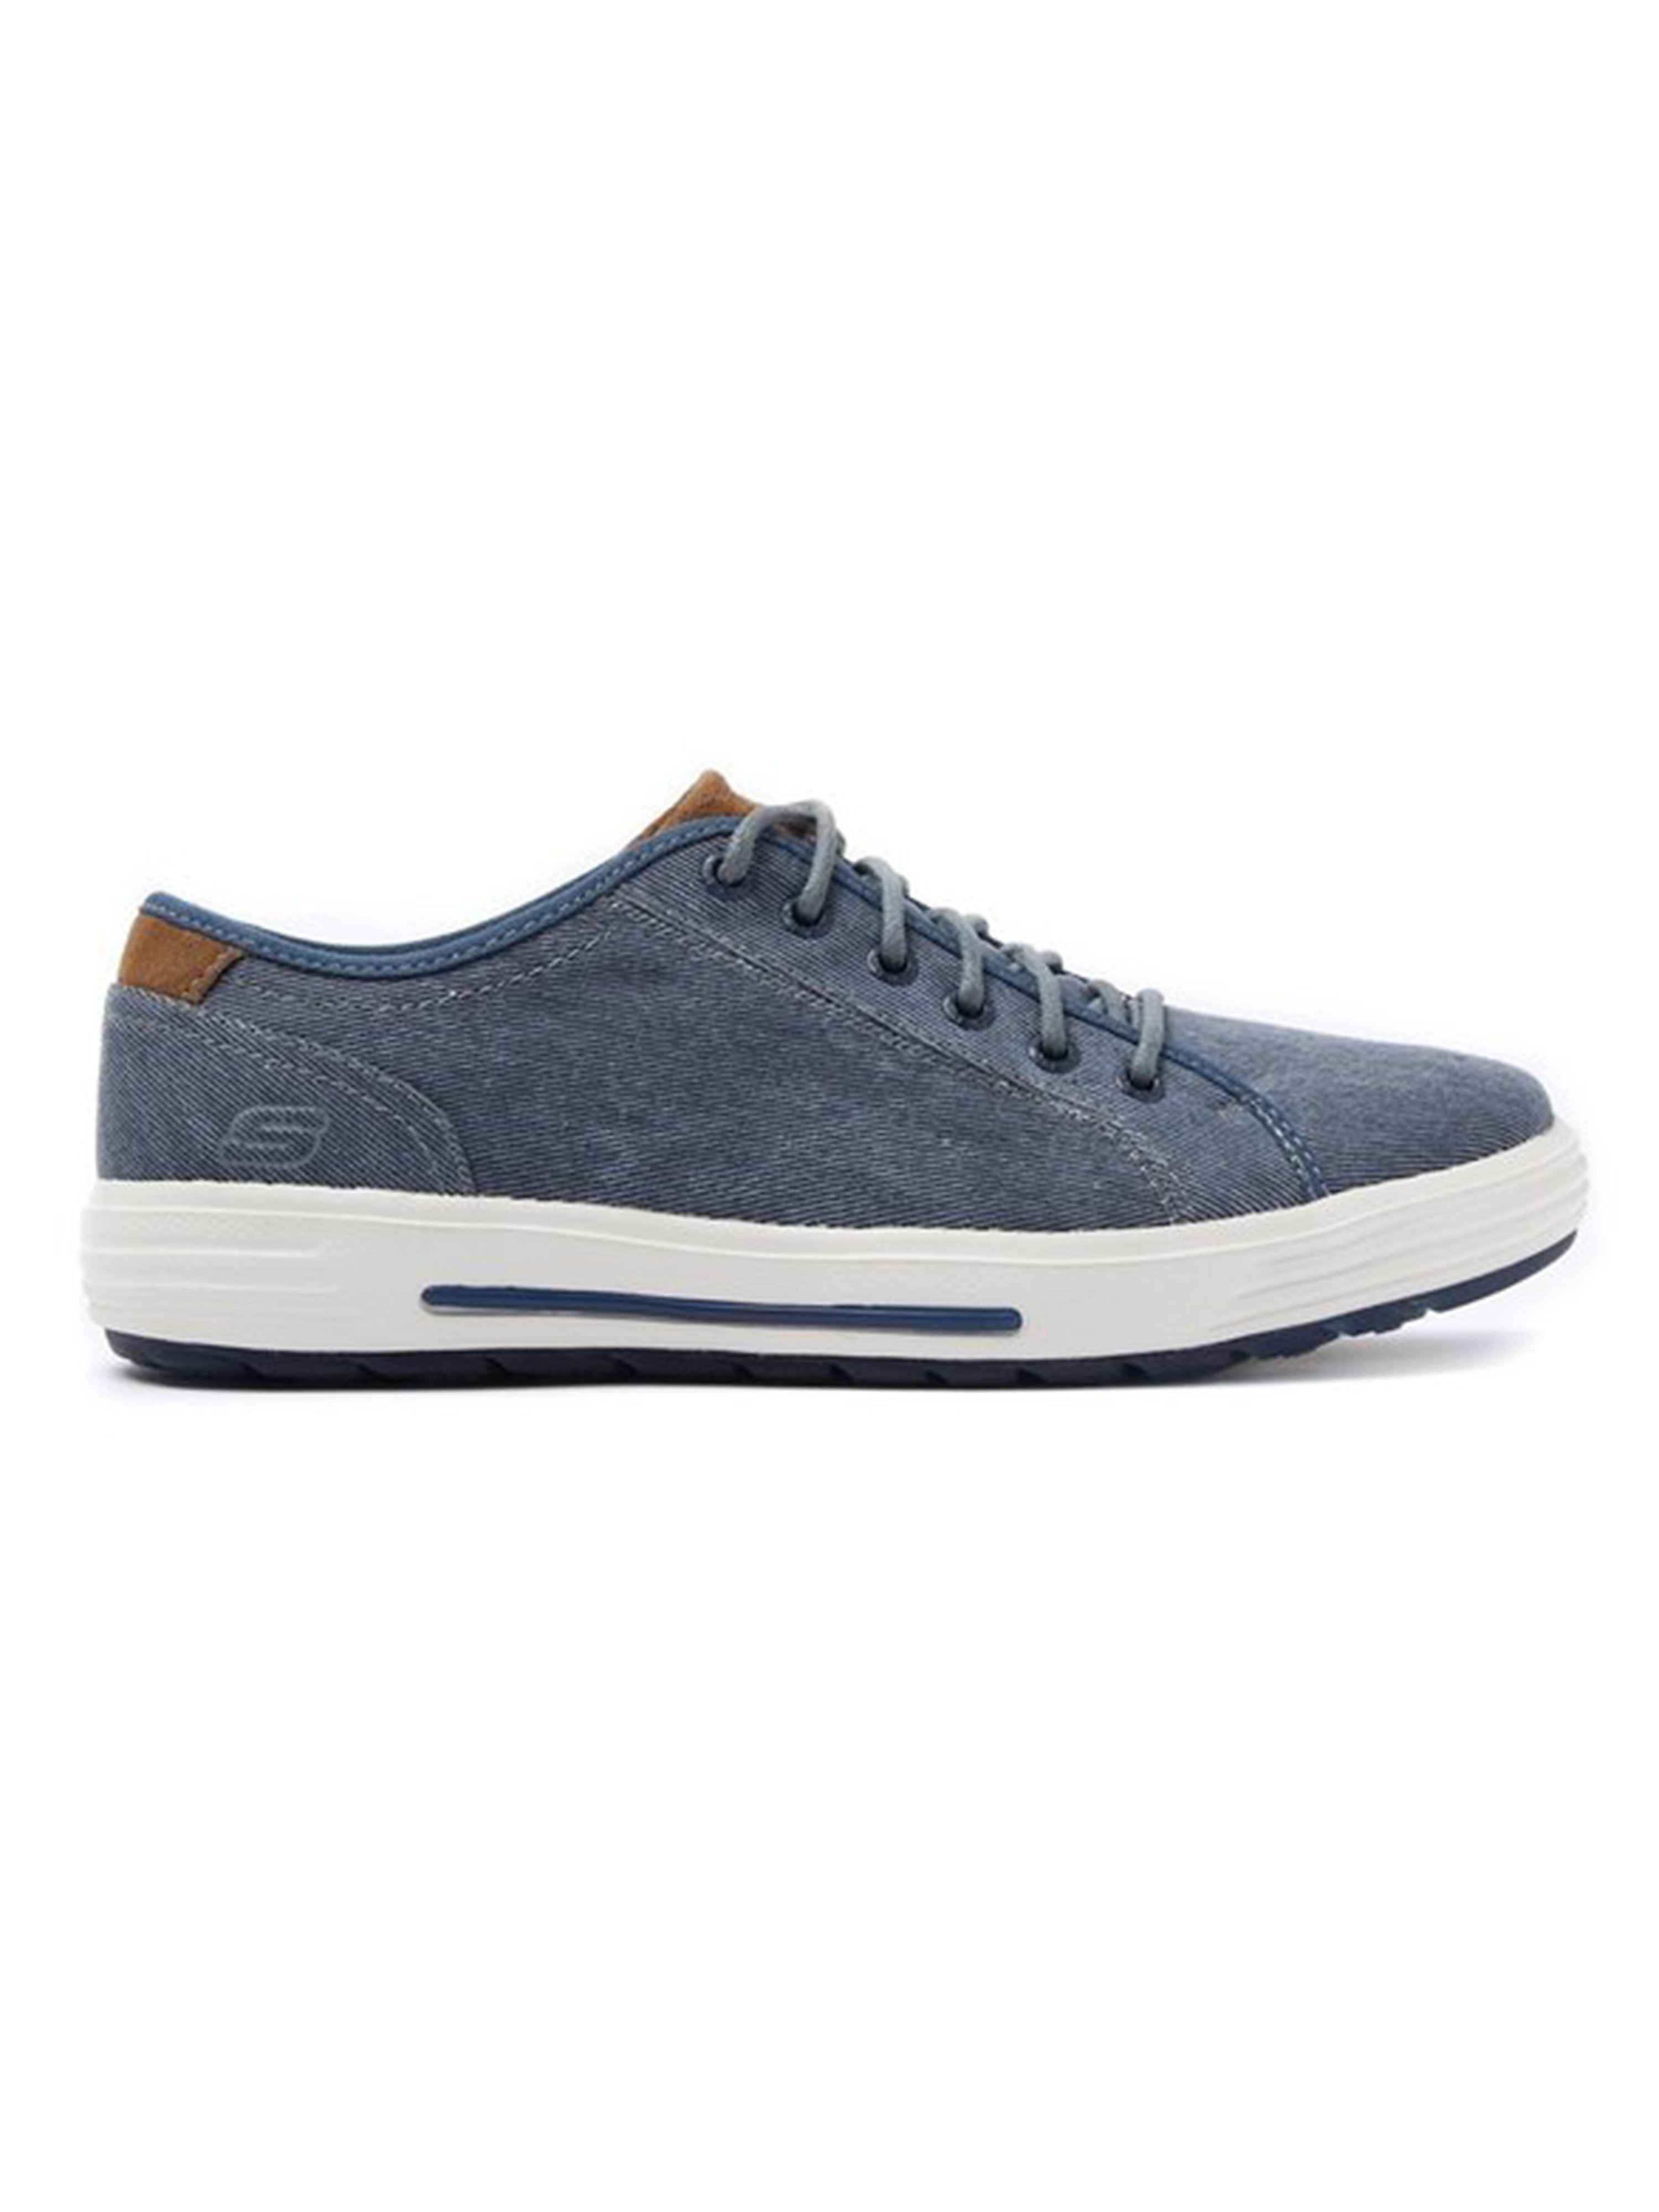 Skechers Men's Porter Meteno Canvas Trainers - Navy